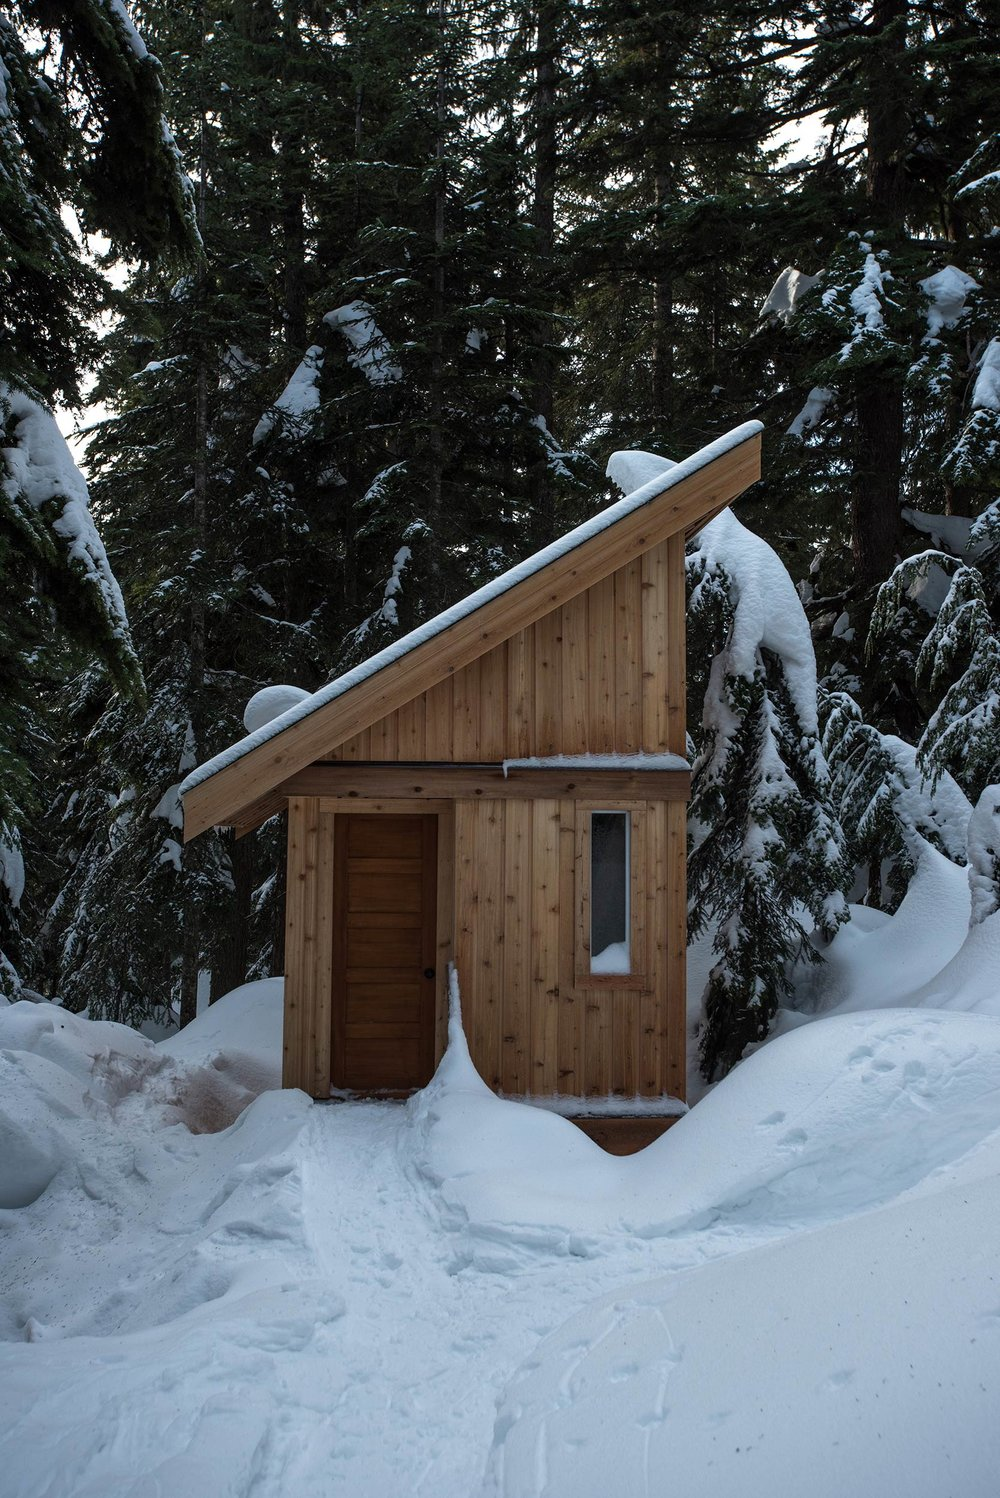 cypress_huts_outhouse3.jpg